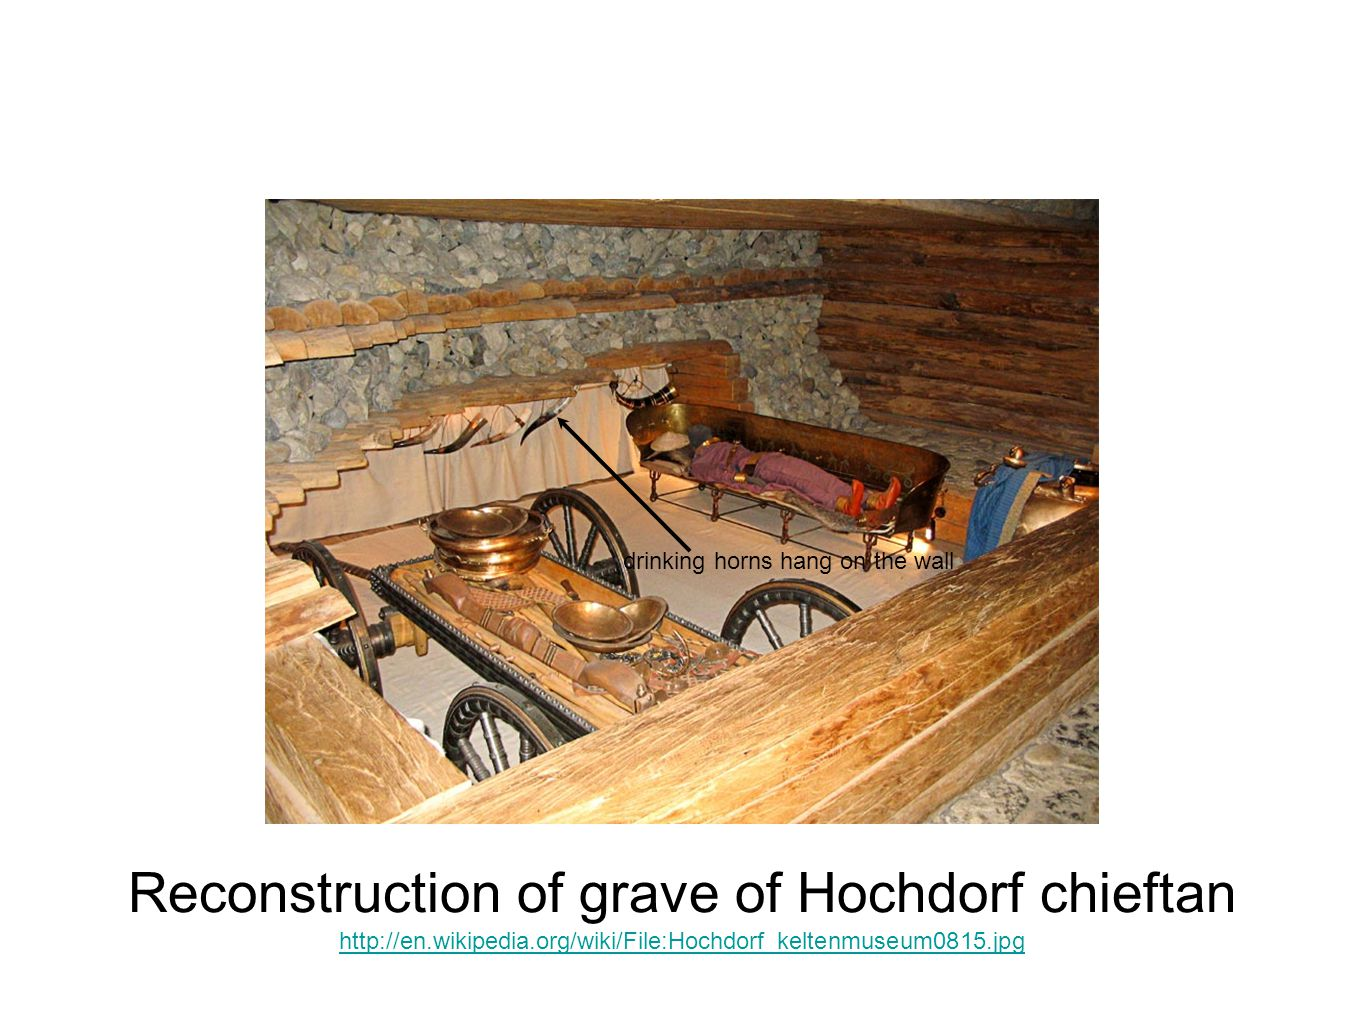 Reconstruction of grave of Hochdorf chieftan